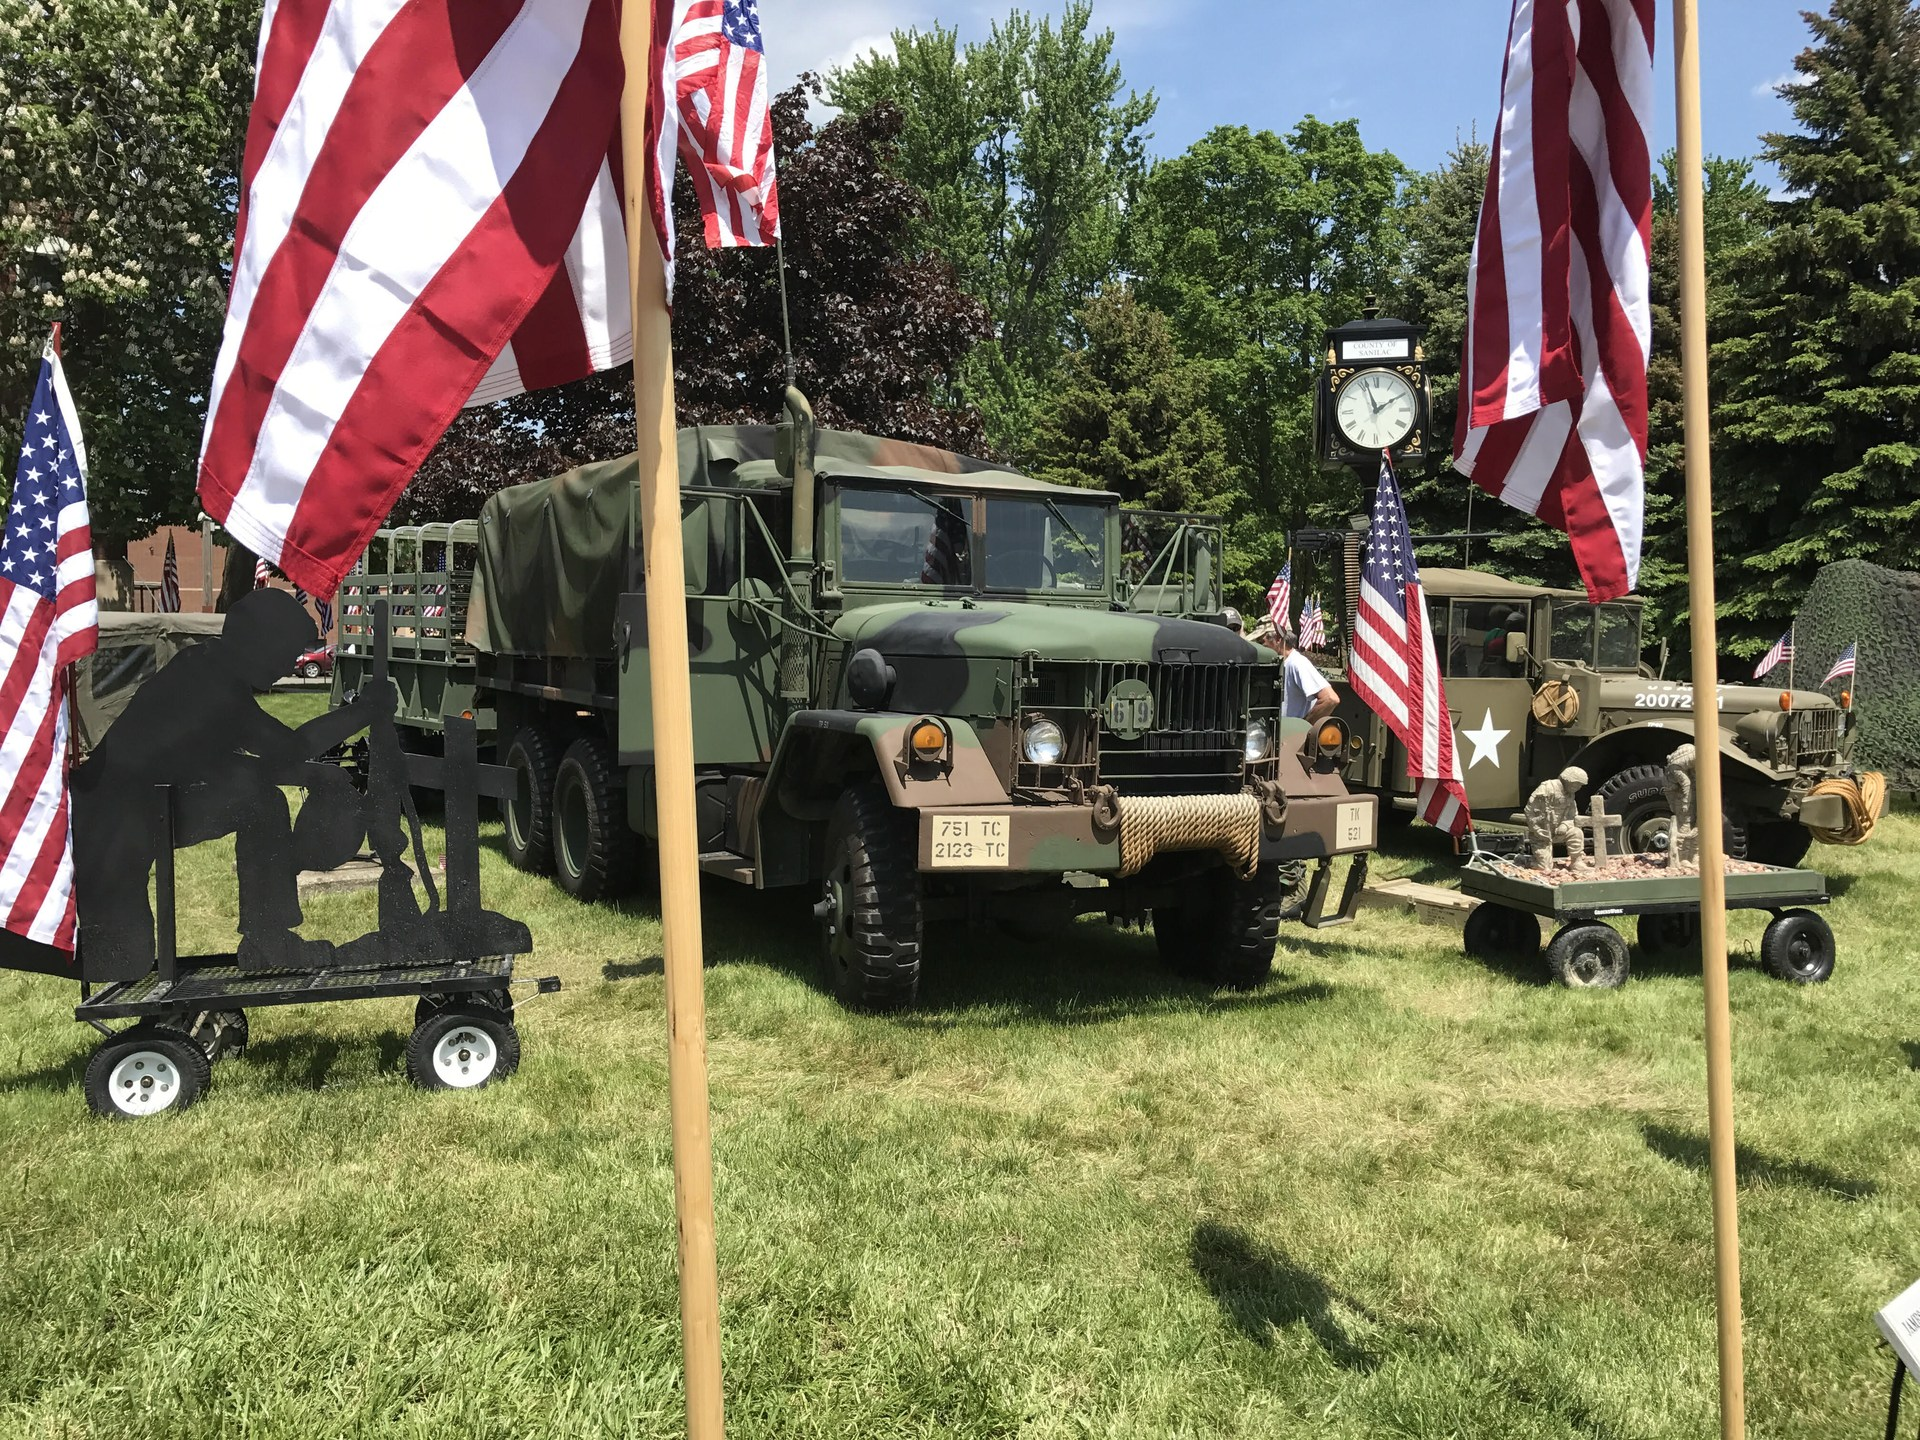 Army truck display.